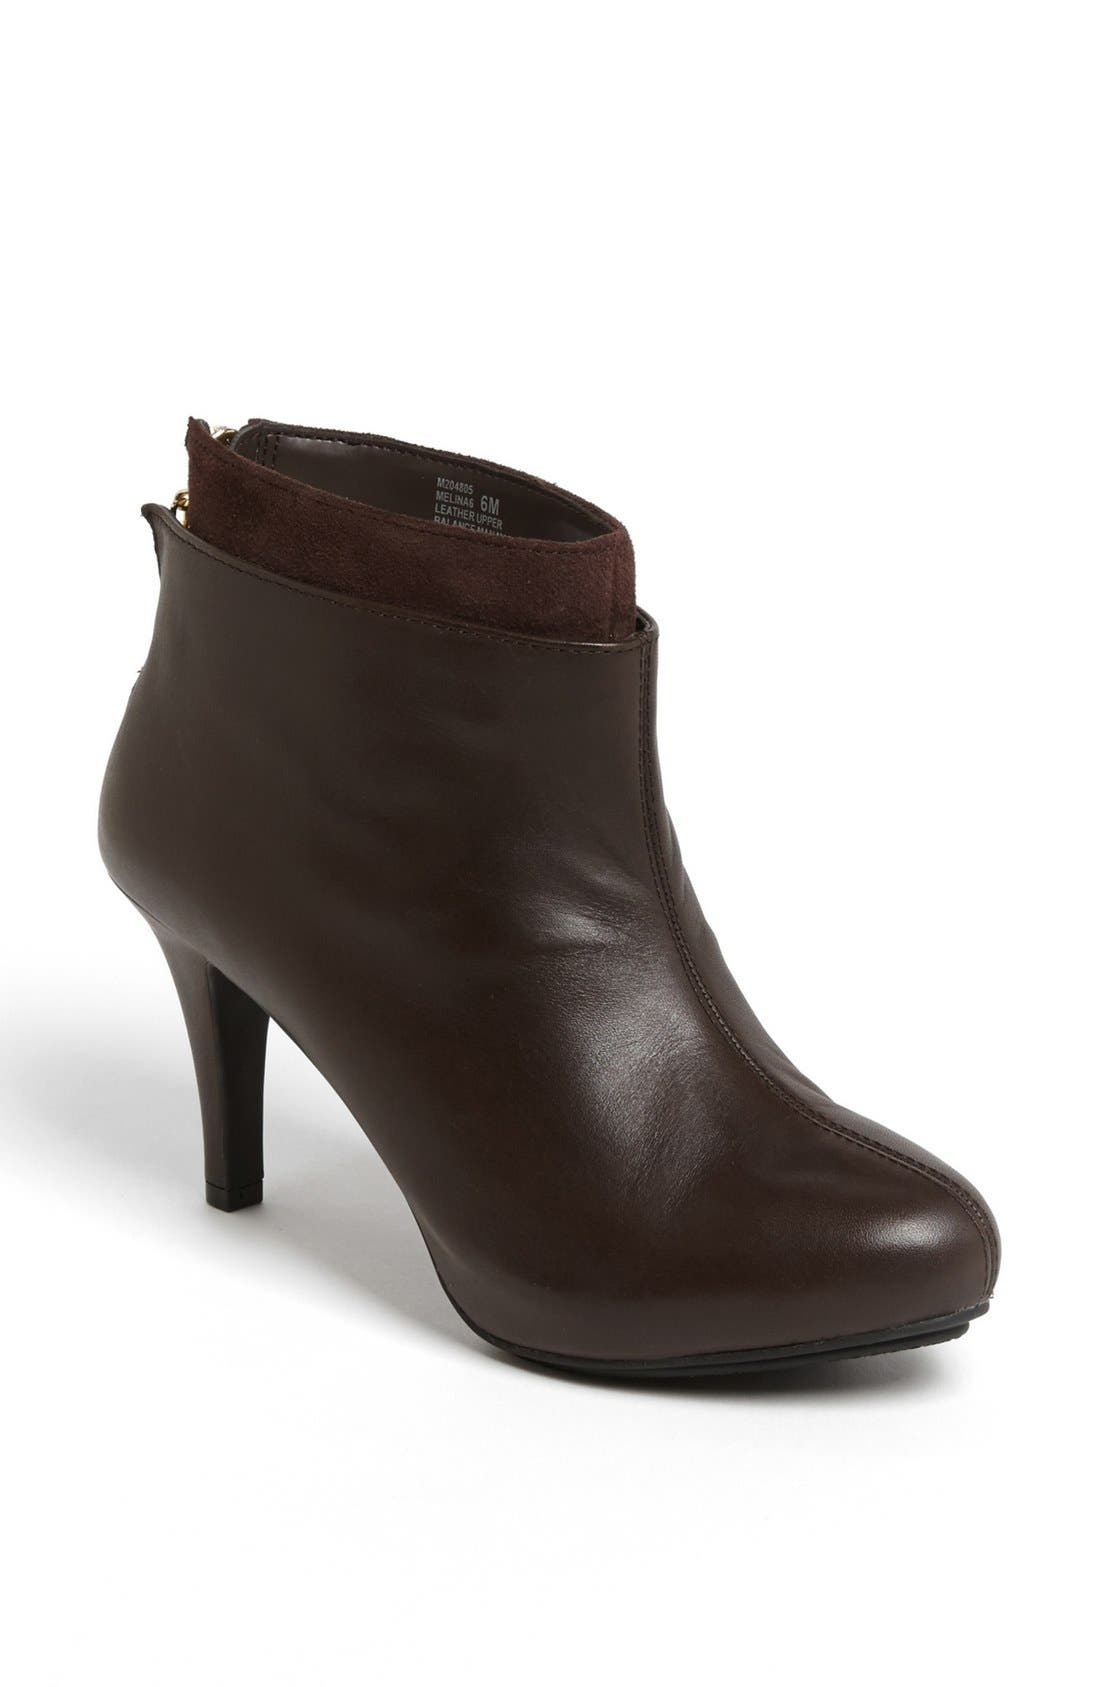 Main Image - Me Too 'Melina' Bootie